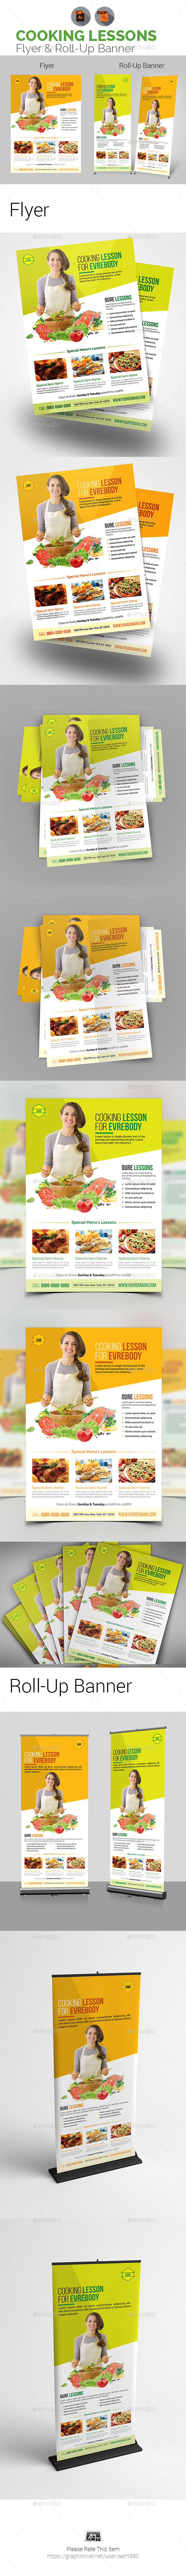 Cooking Lessons Flyer & Roll-Up Banner Bundle - Signage Print Templates